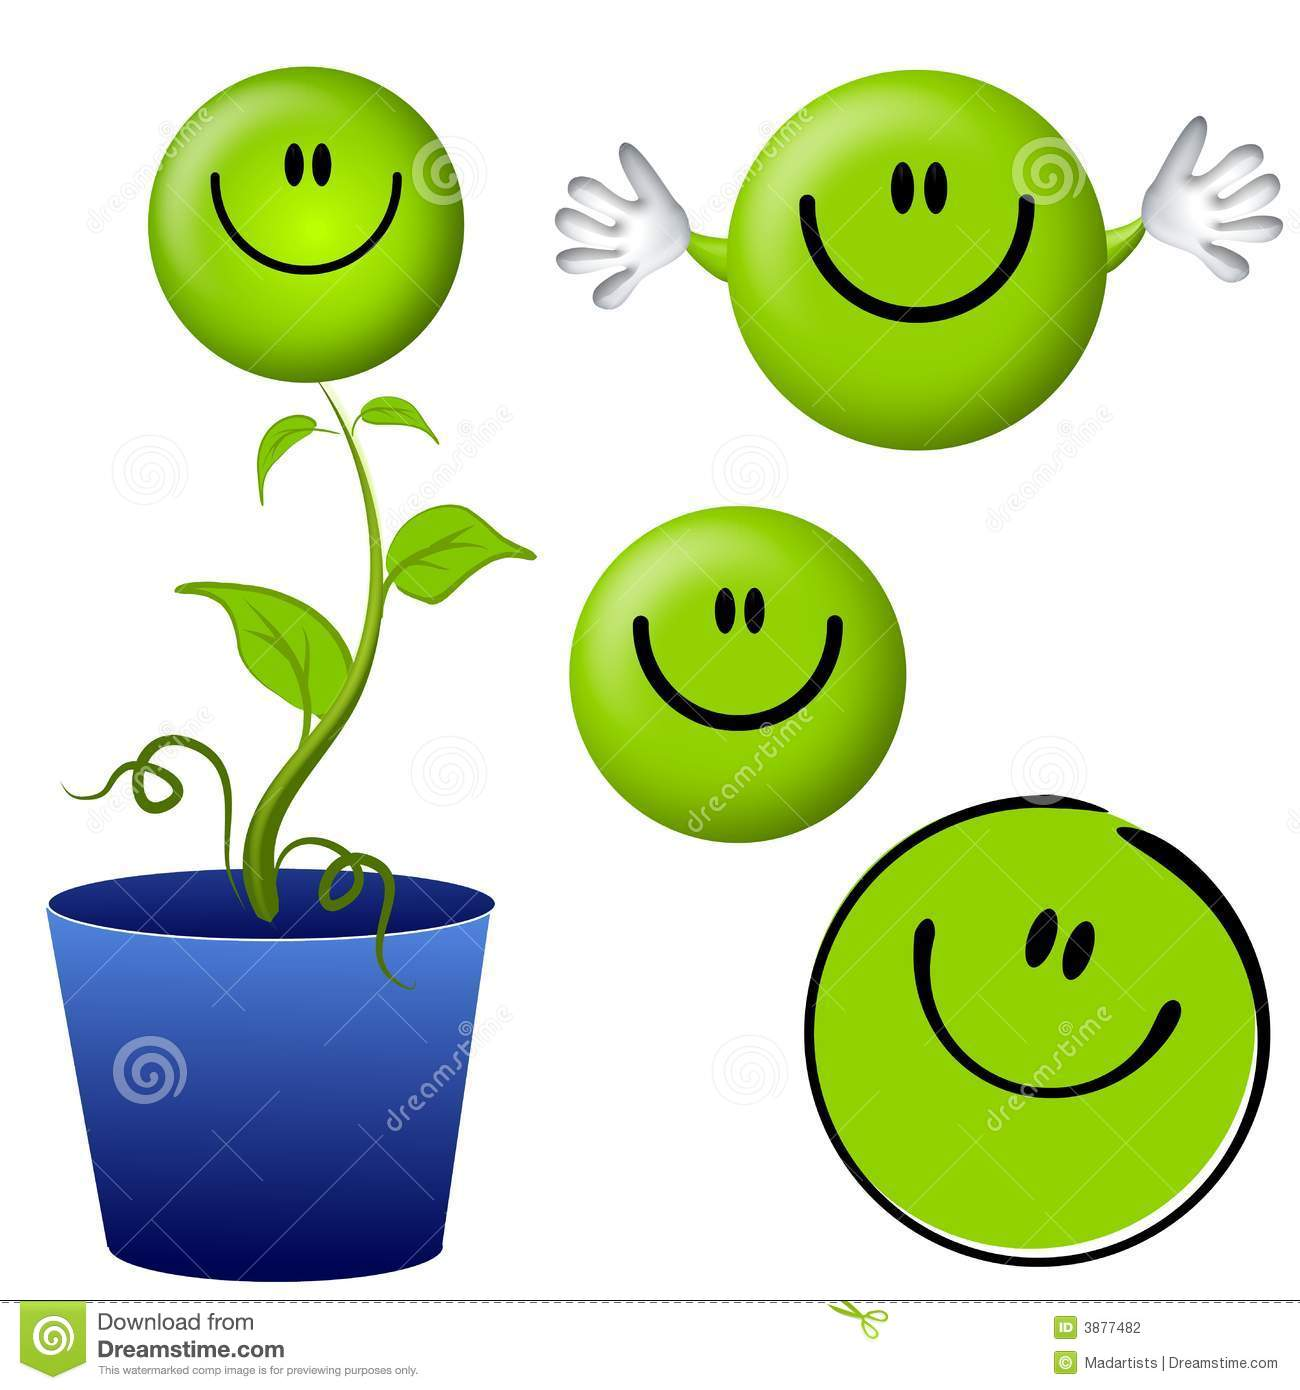 clip art illustration featuring a variety of green themed smiley ...